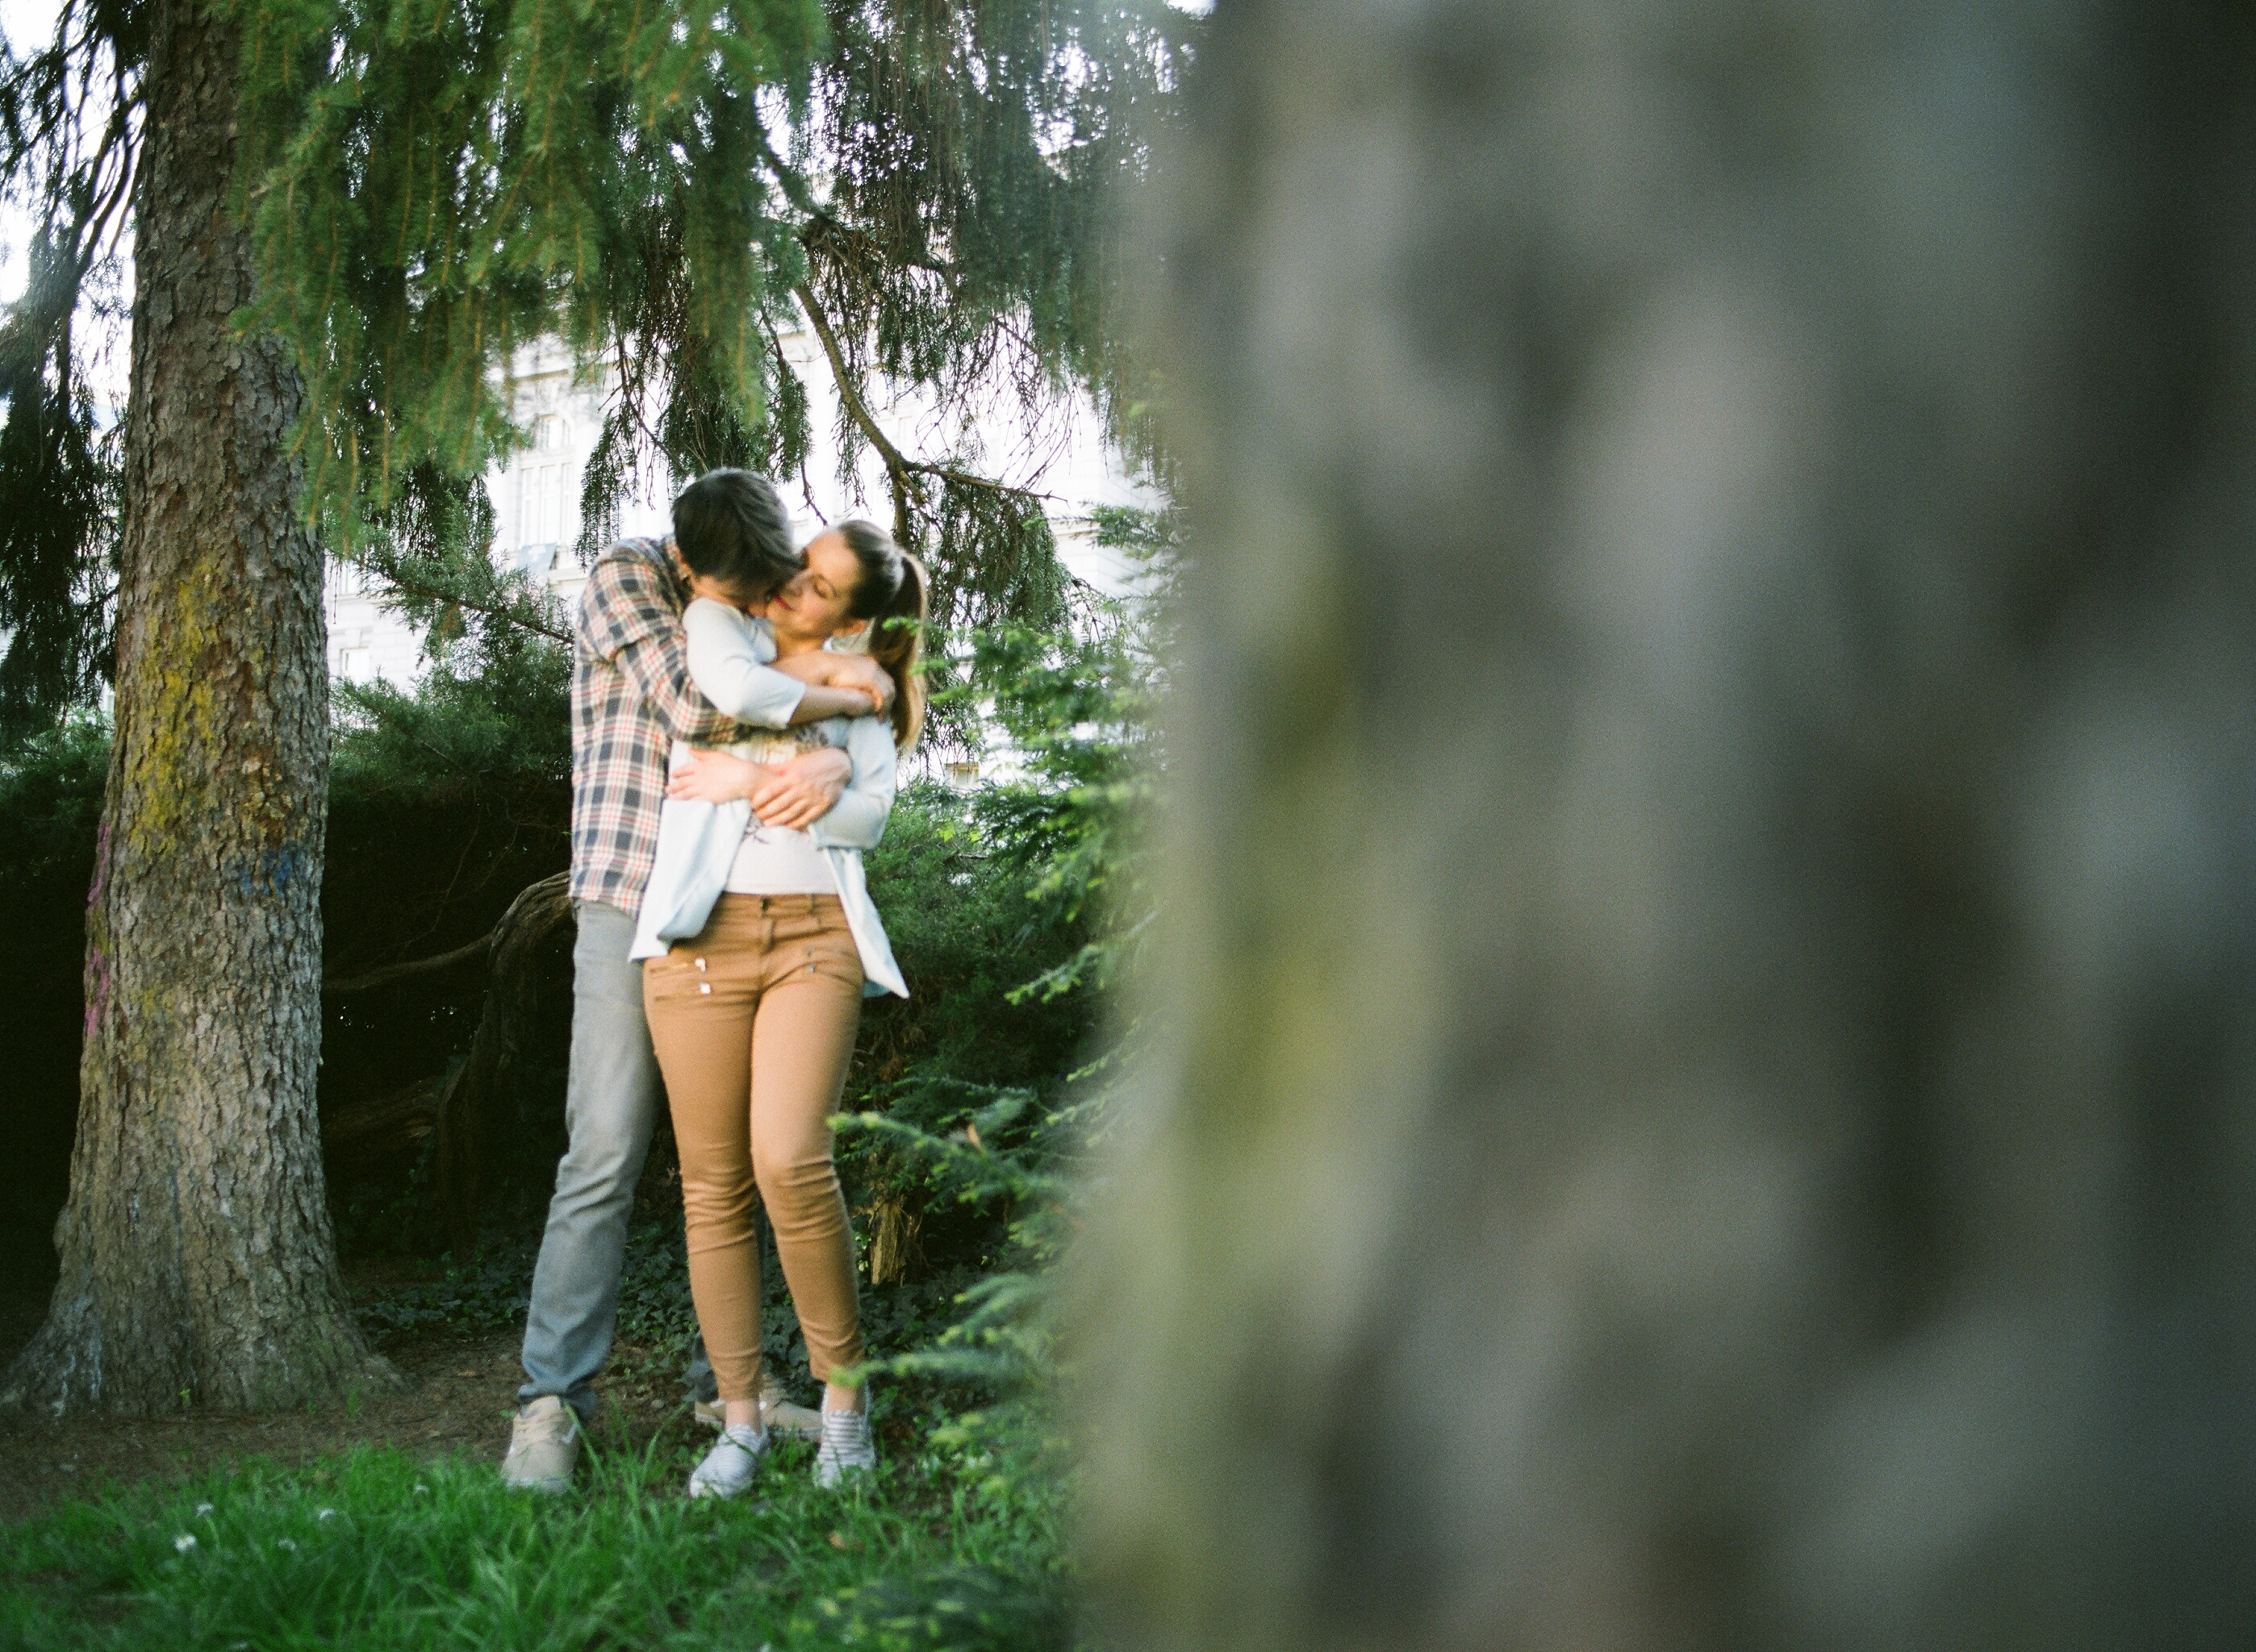 couple kissing in the woods. medium format film shot, mamiya 645 pro tl, sekor 45mm f2.8